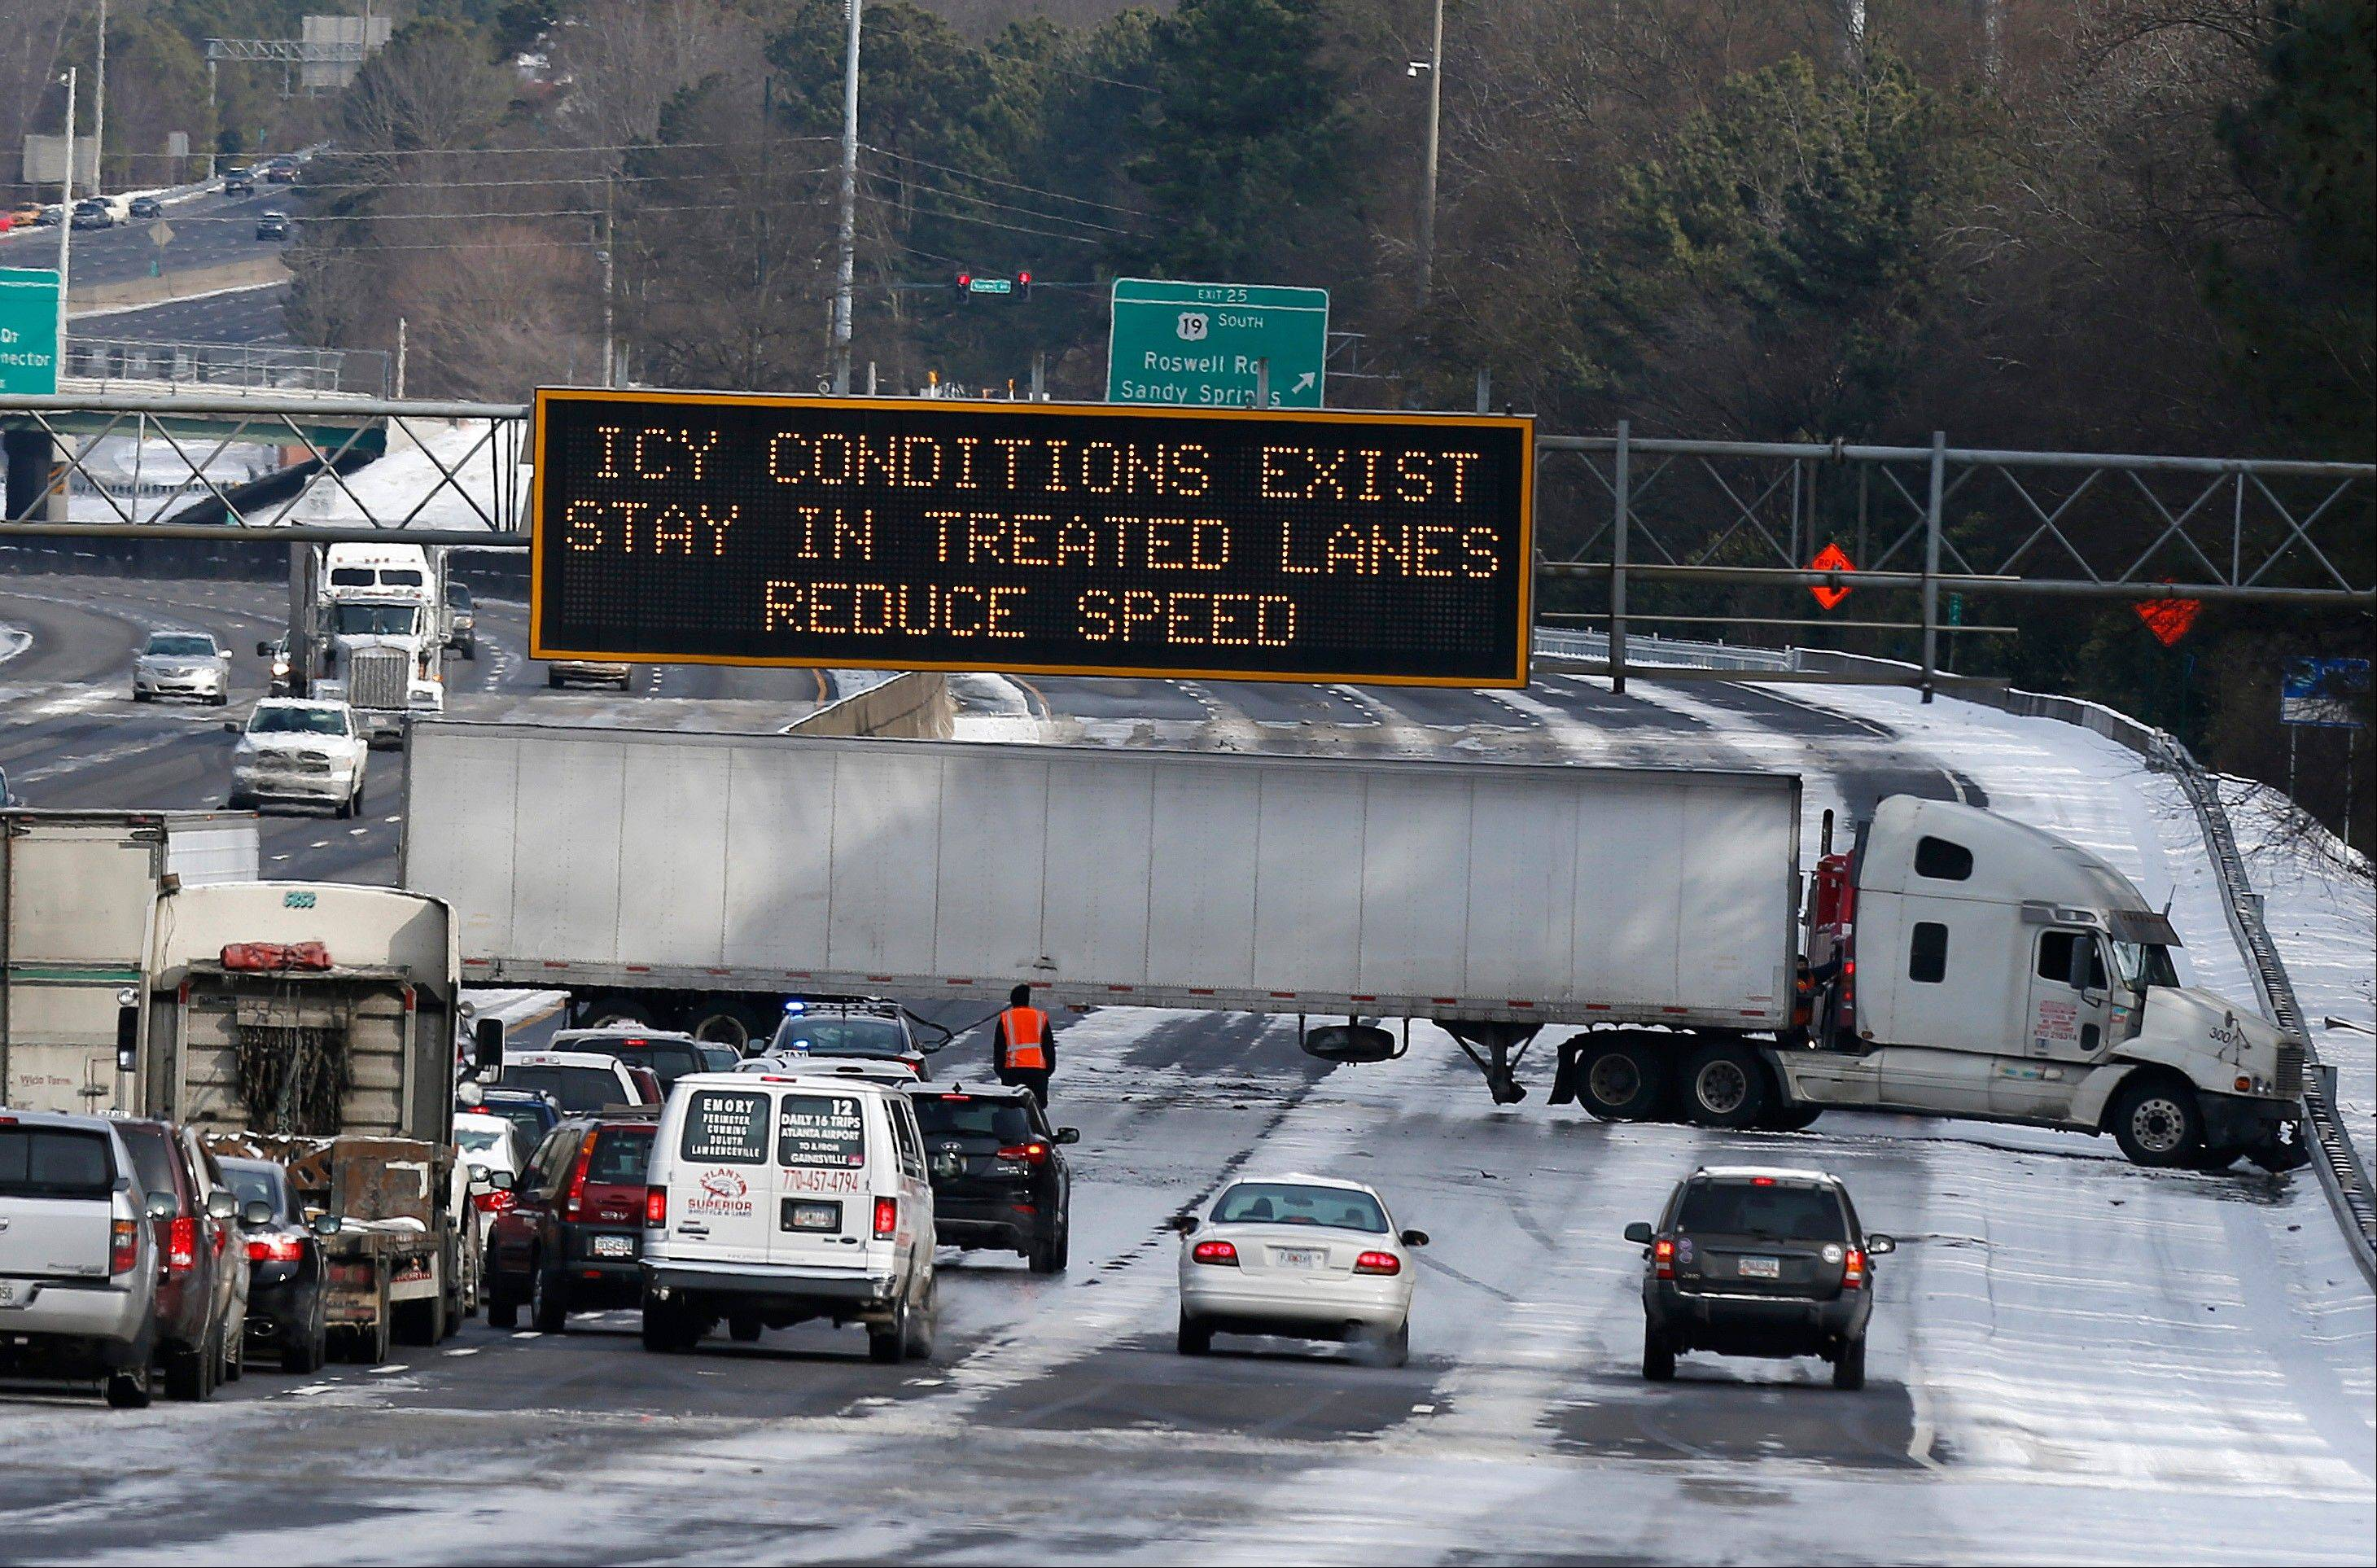 Some interstates around Atlanta remained clogged by jackknifed eighteen-wheelers Wednesday afternoon, more than 24 hours after snow began falling on the city.